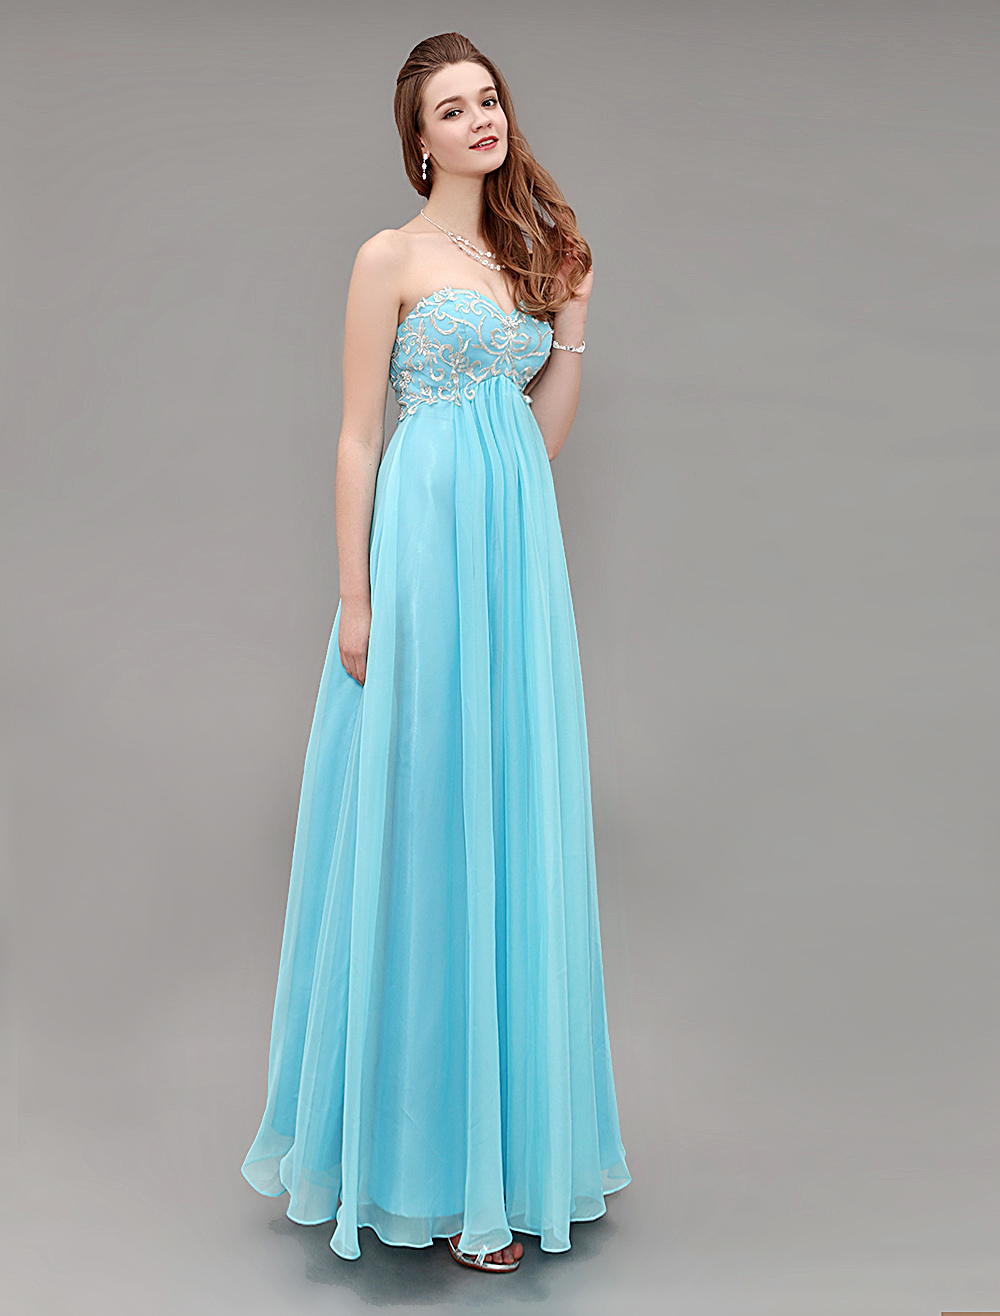 Blue Sweetheart Long Chiffon Prom Dress With Embroidered Bodice (Wedding Prom Dresses) photo